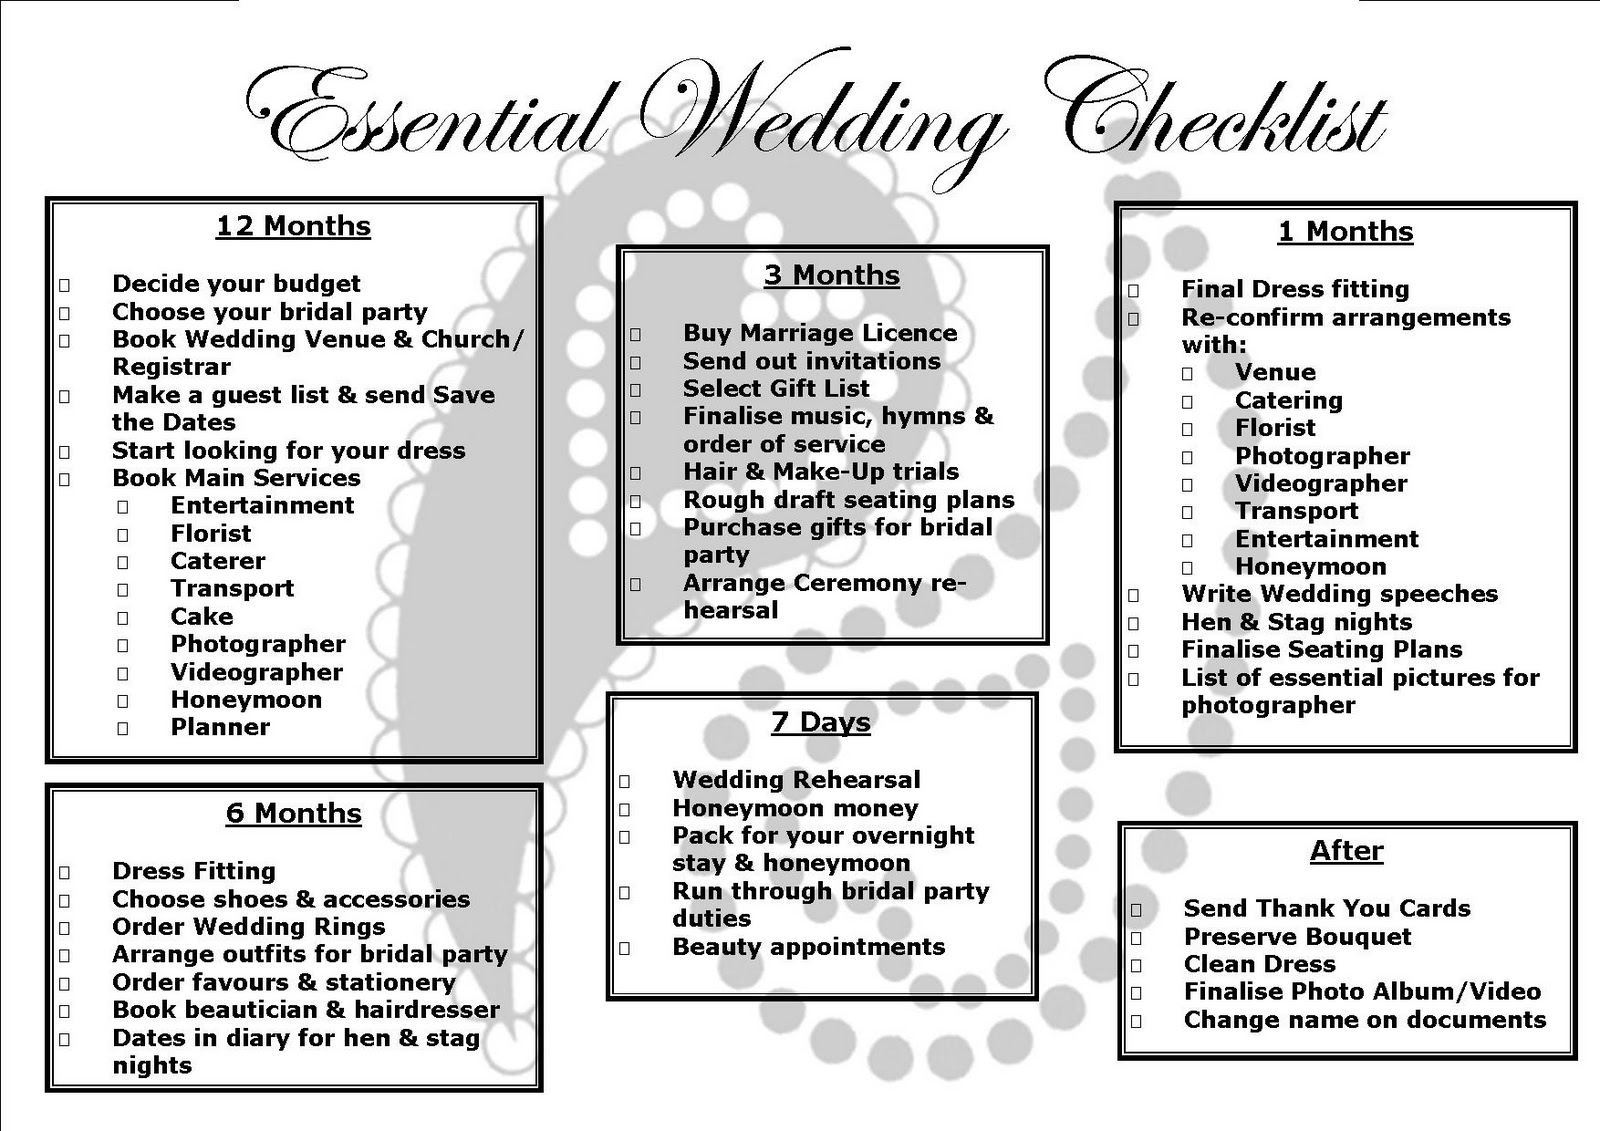 Renfrewshire Wedding Directory: Essential Wedding Checklist